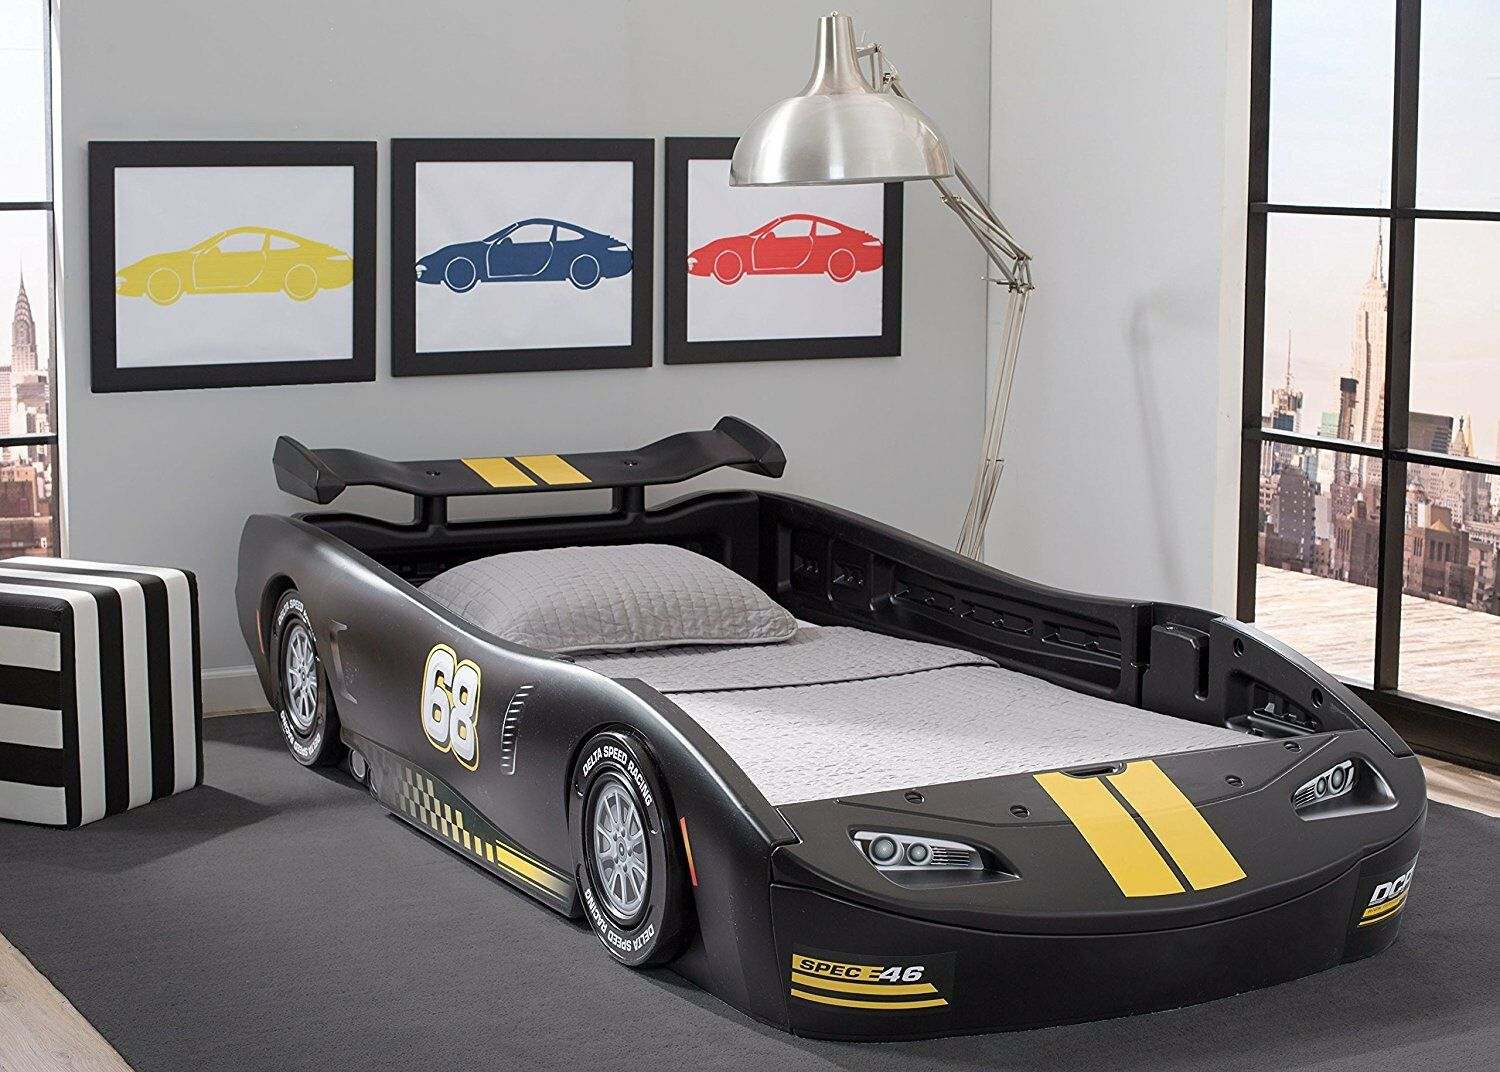 Picture of: Boys Twin Bed Race Car Black Turbo Racing Frame For Kids Teens Bedroom Furniture 619775415232 Ebay